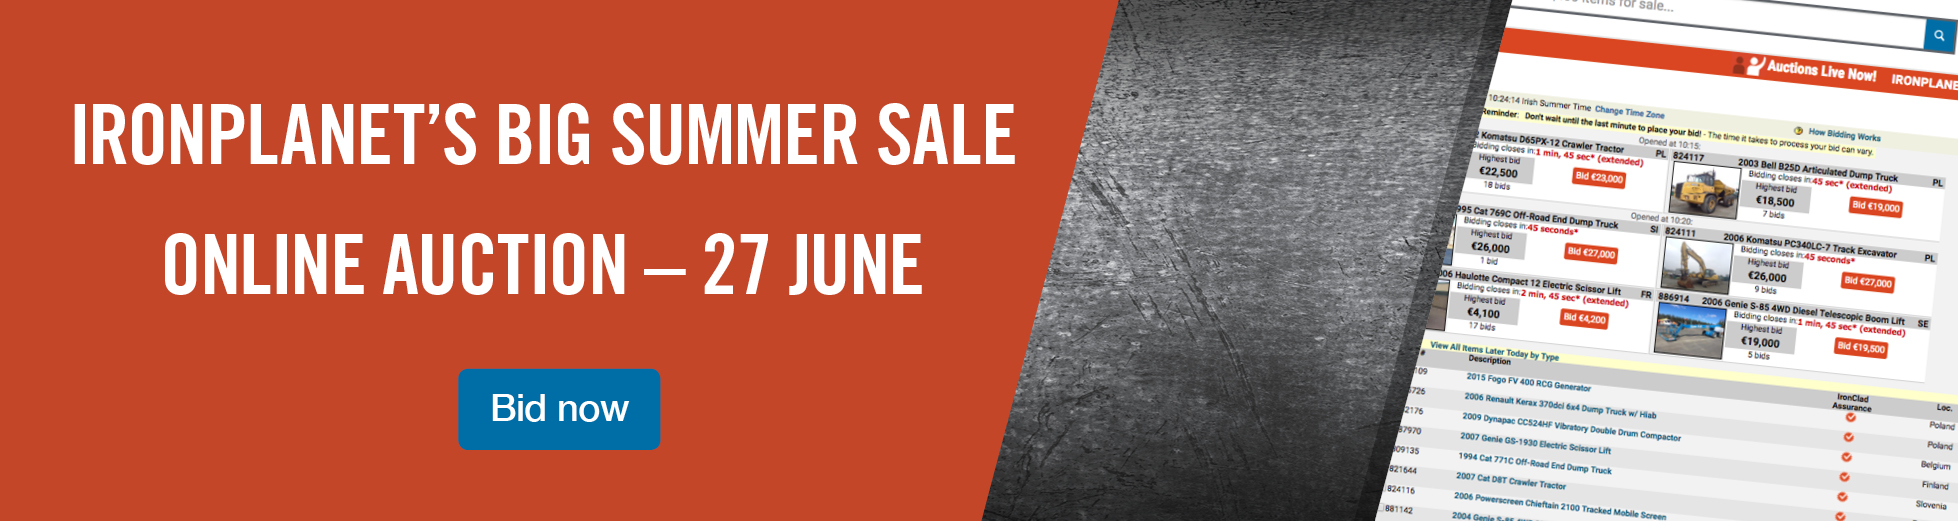 Big Summer Sale 27 June